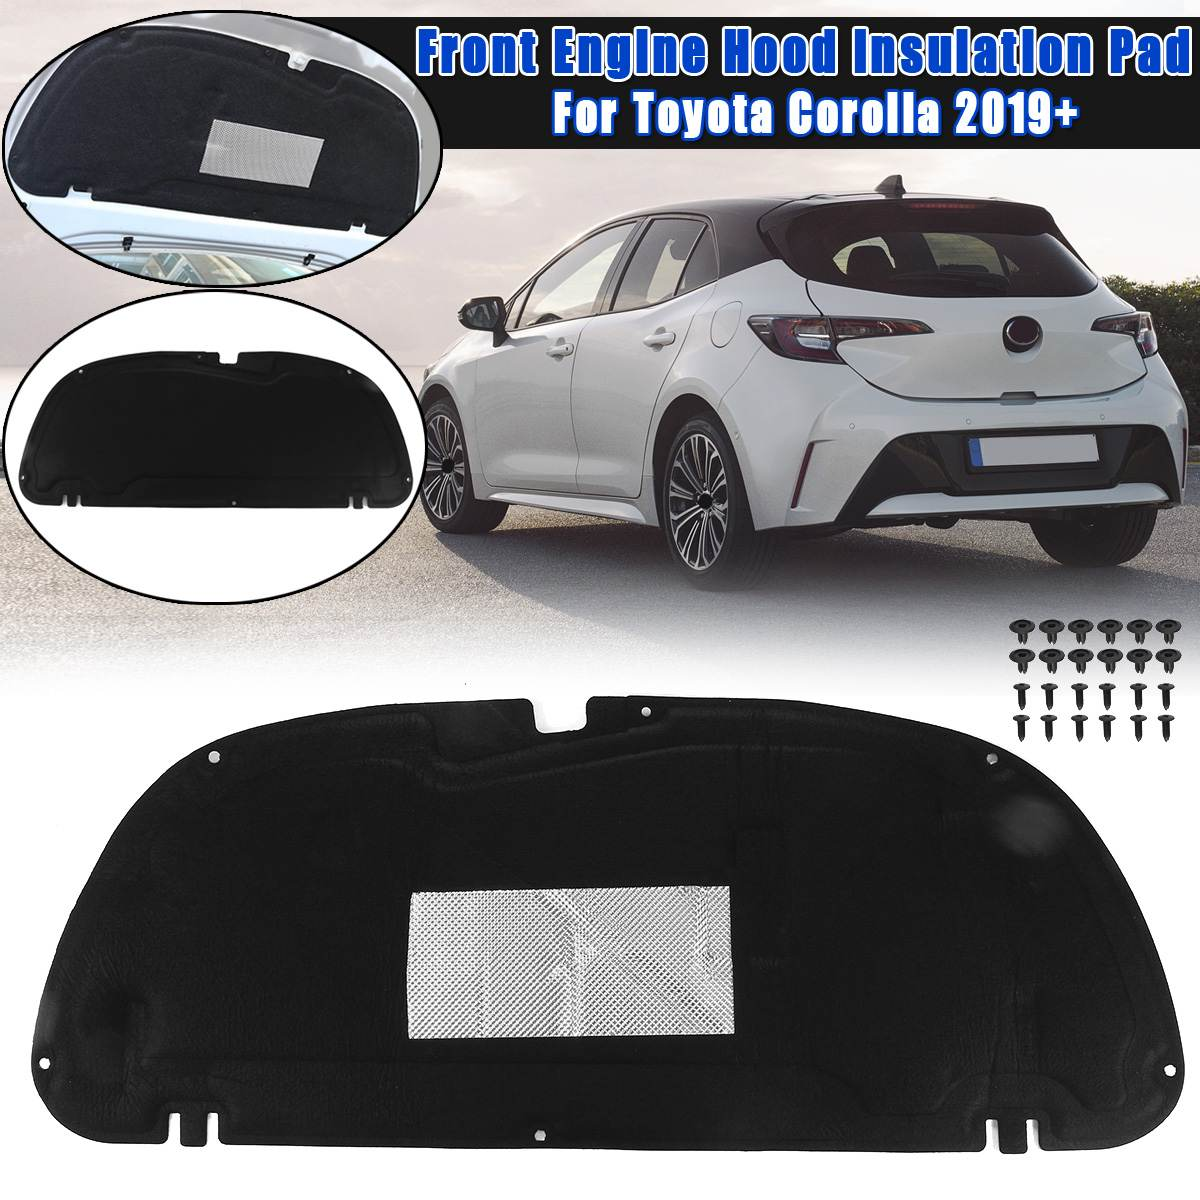 1PCS Car Hood Engine Sound Insulation Pad Cover thermal Heat Insulation Pad Mat Fits For Toyota Corolla 2019+ car accessories